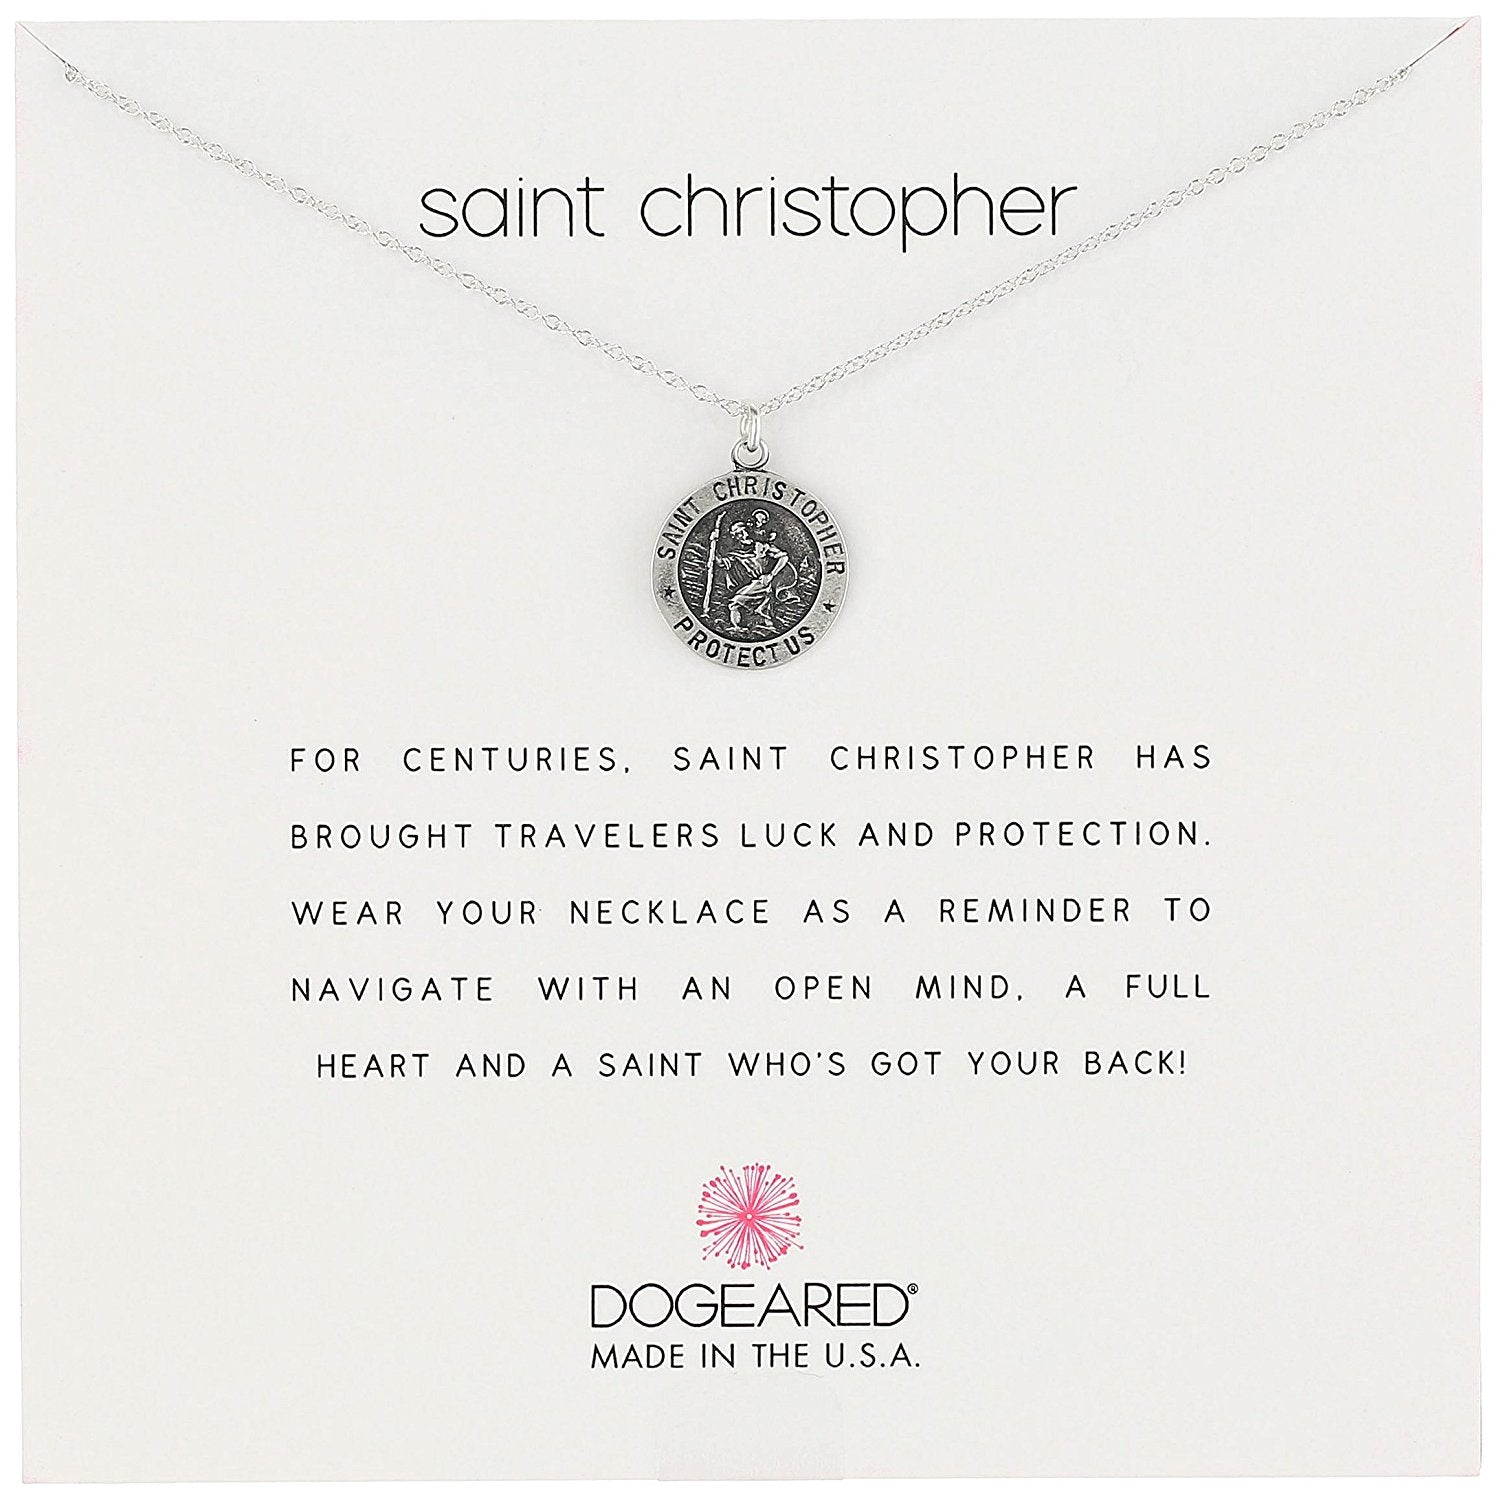 Dogeared Saint Christopher Travelers Necklace